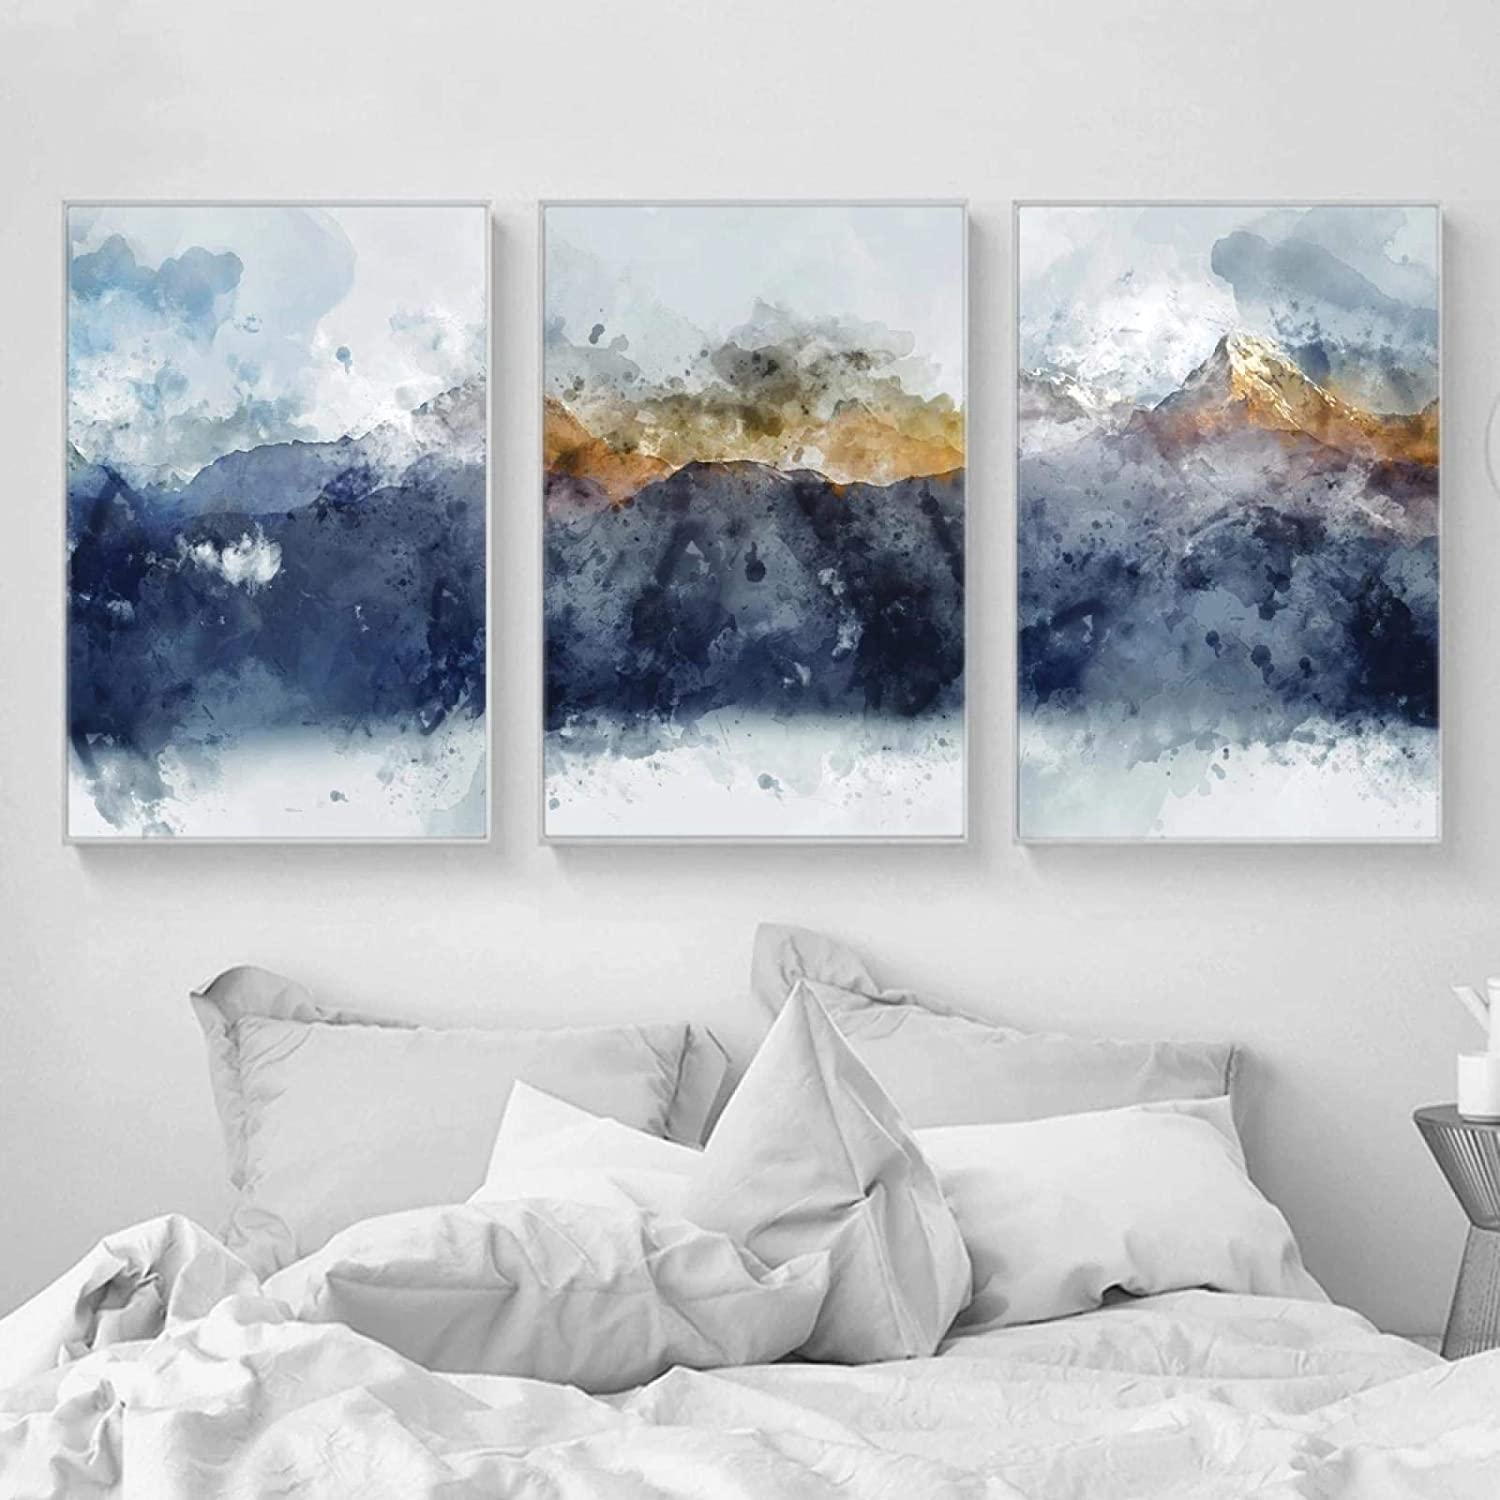 Wall 格安店 Art for Living Room Abstract Gold Painting Yellow 送料無料(一部地域を除く) Navy Blue